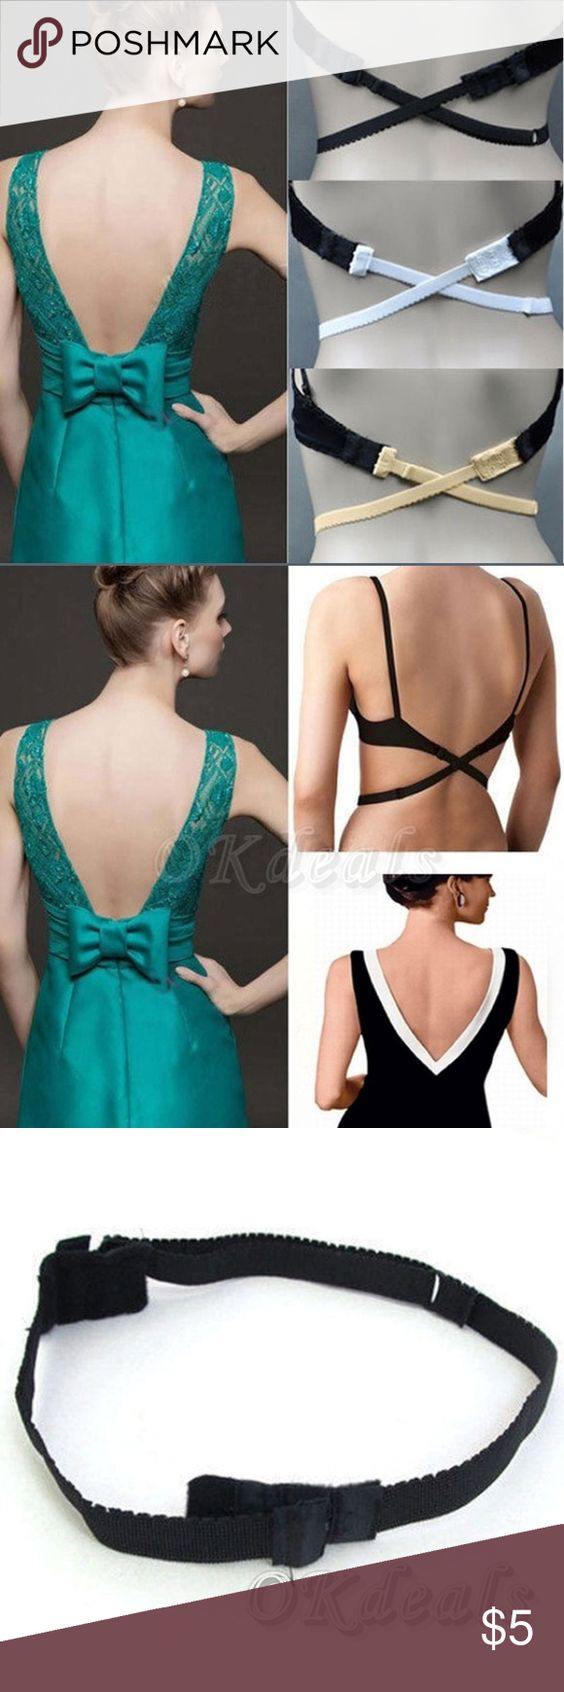 7 Tips to Hide Your Bra Straps Clothes  bra